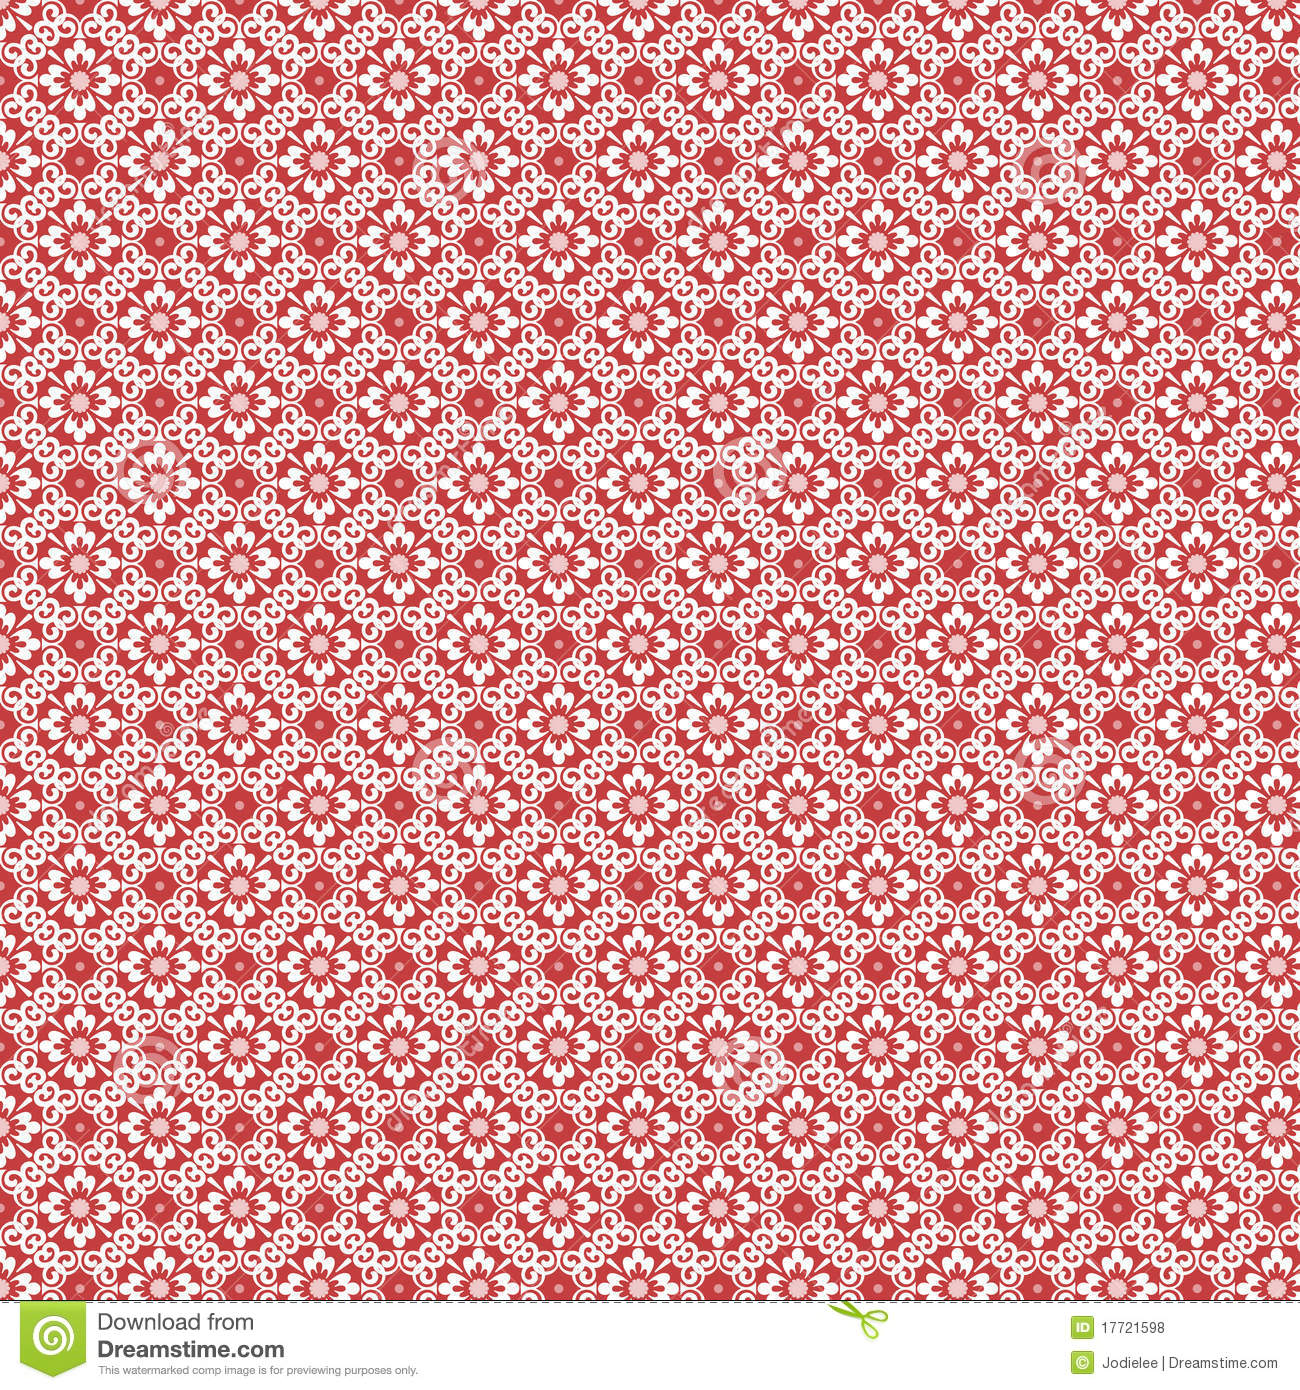 vintage repeating wallpaper - photo #25